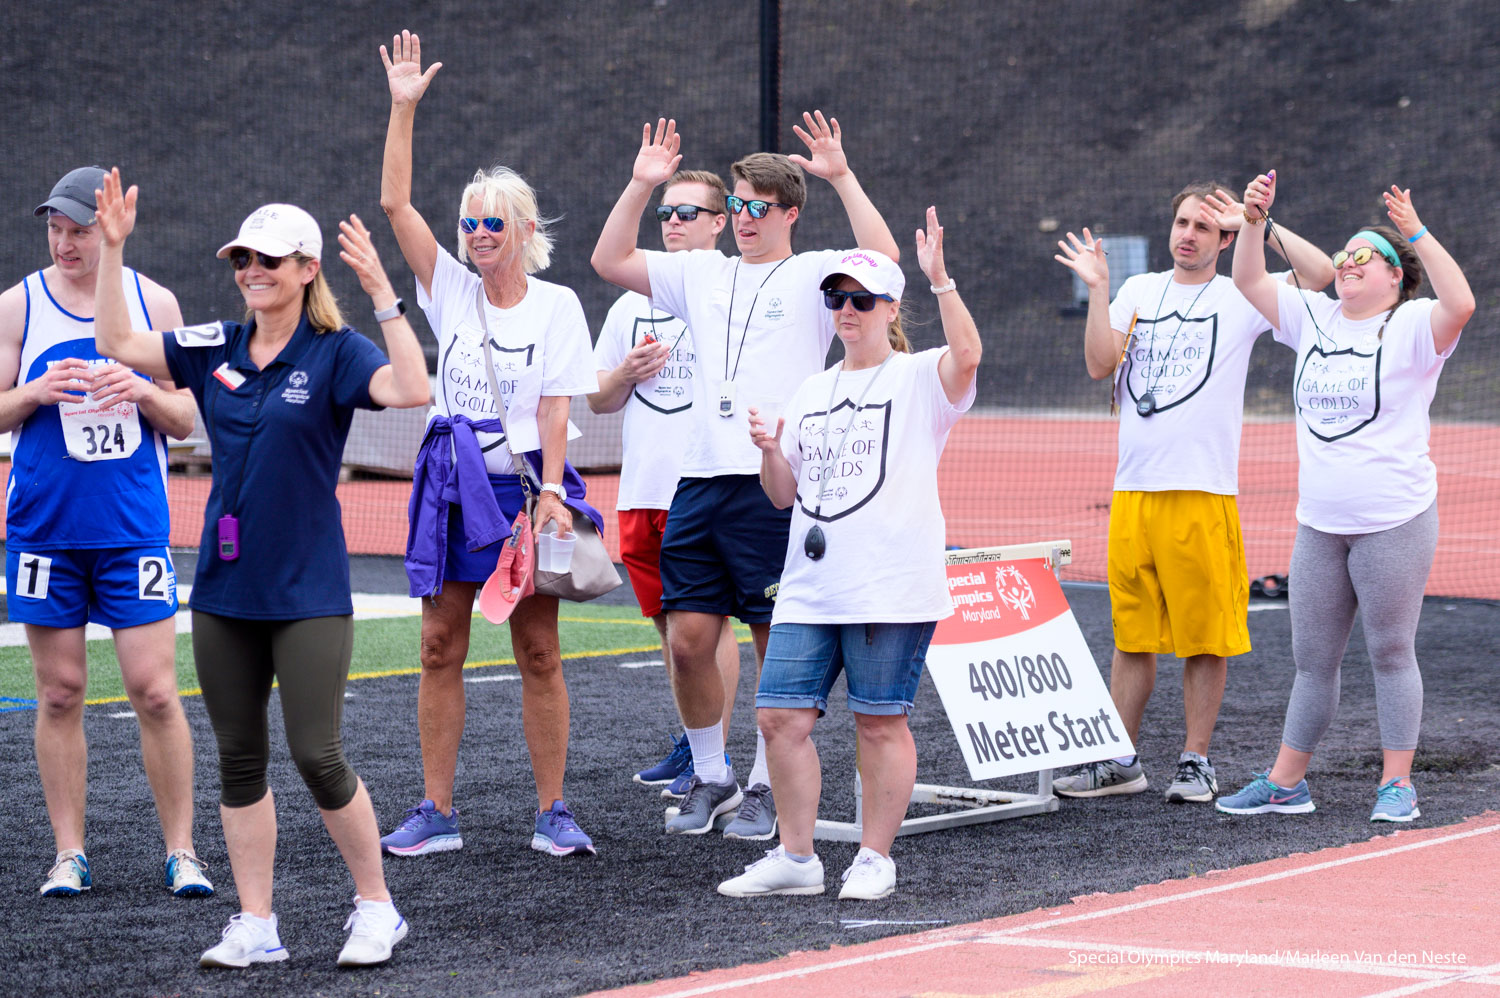 Judges and volunteers applauding a deaf runner at the finish line on the track of Unitas Stadium, Towson University, MD. on Sunday, June 9, 2019.